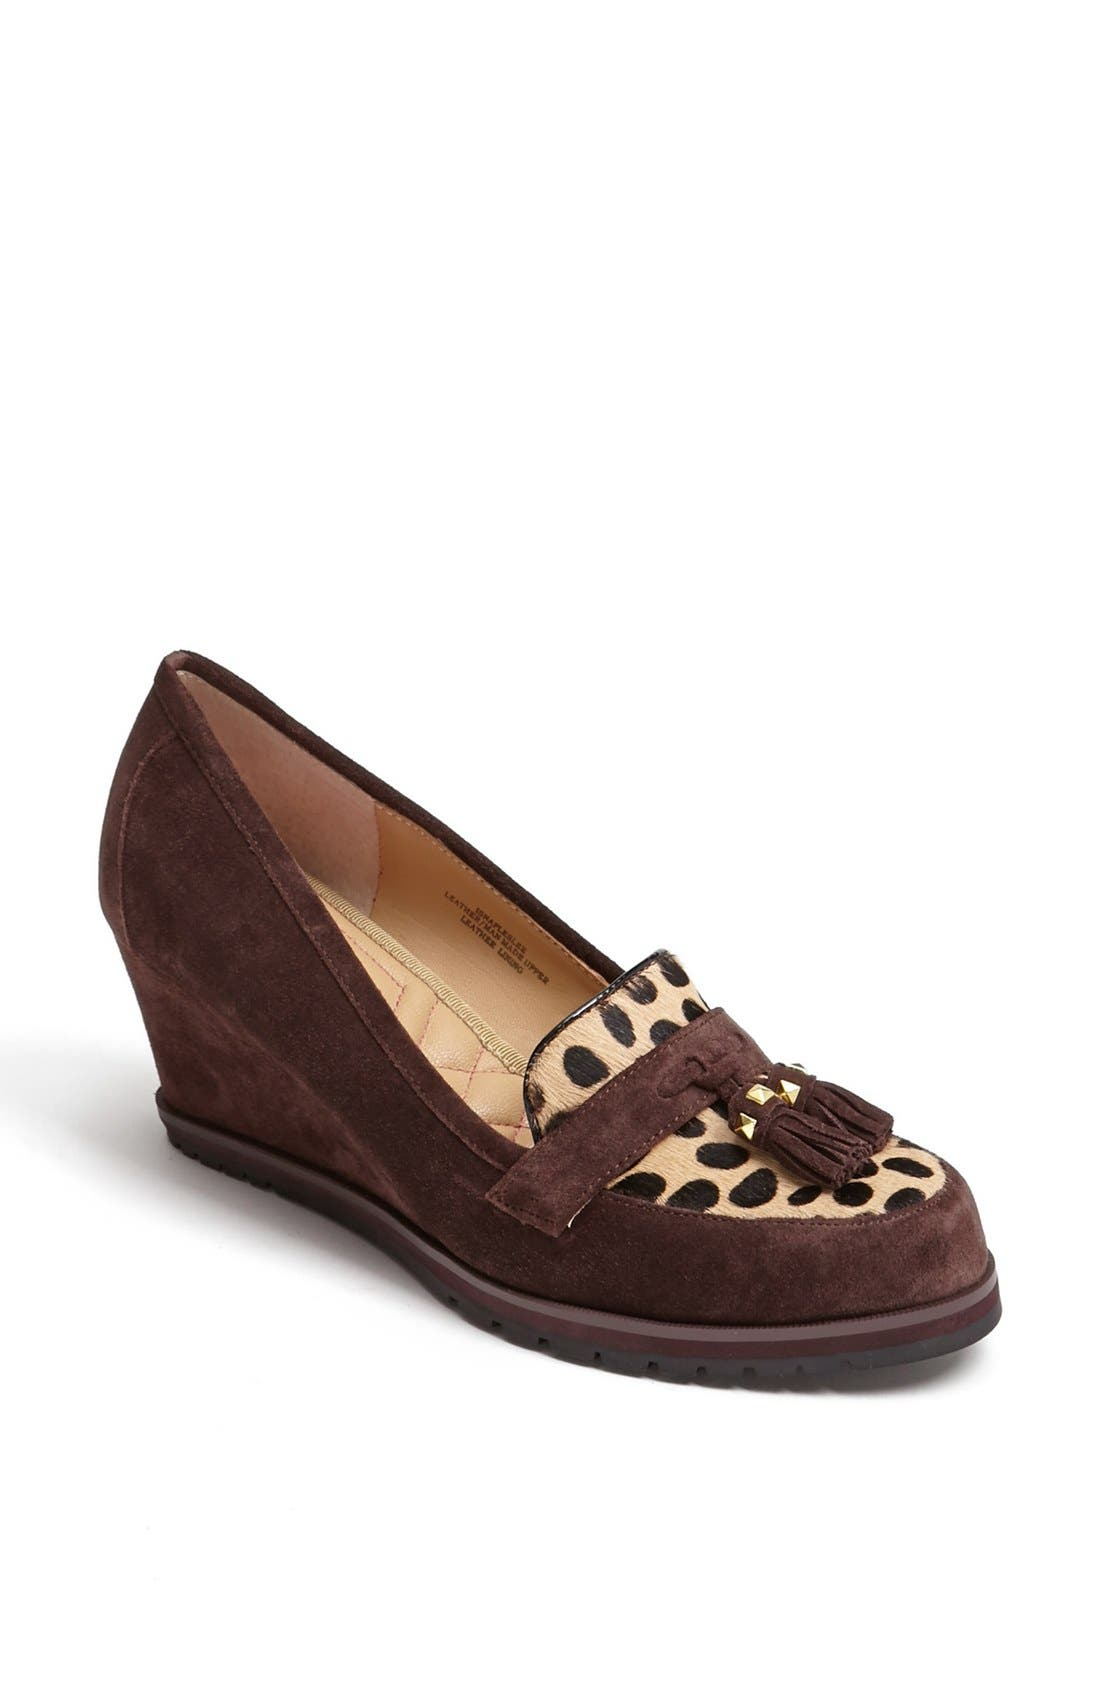 Main Image - Isaac Mizrahi New York 'Naples' Loafer Pump